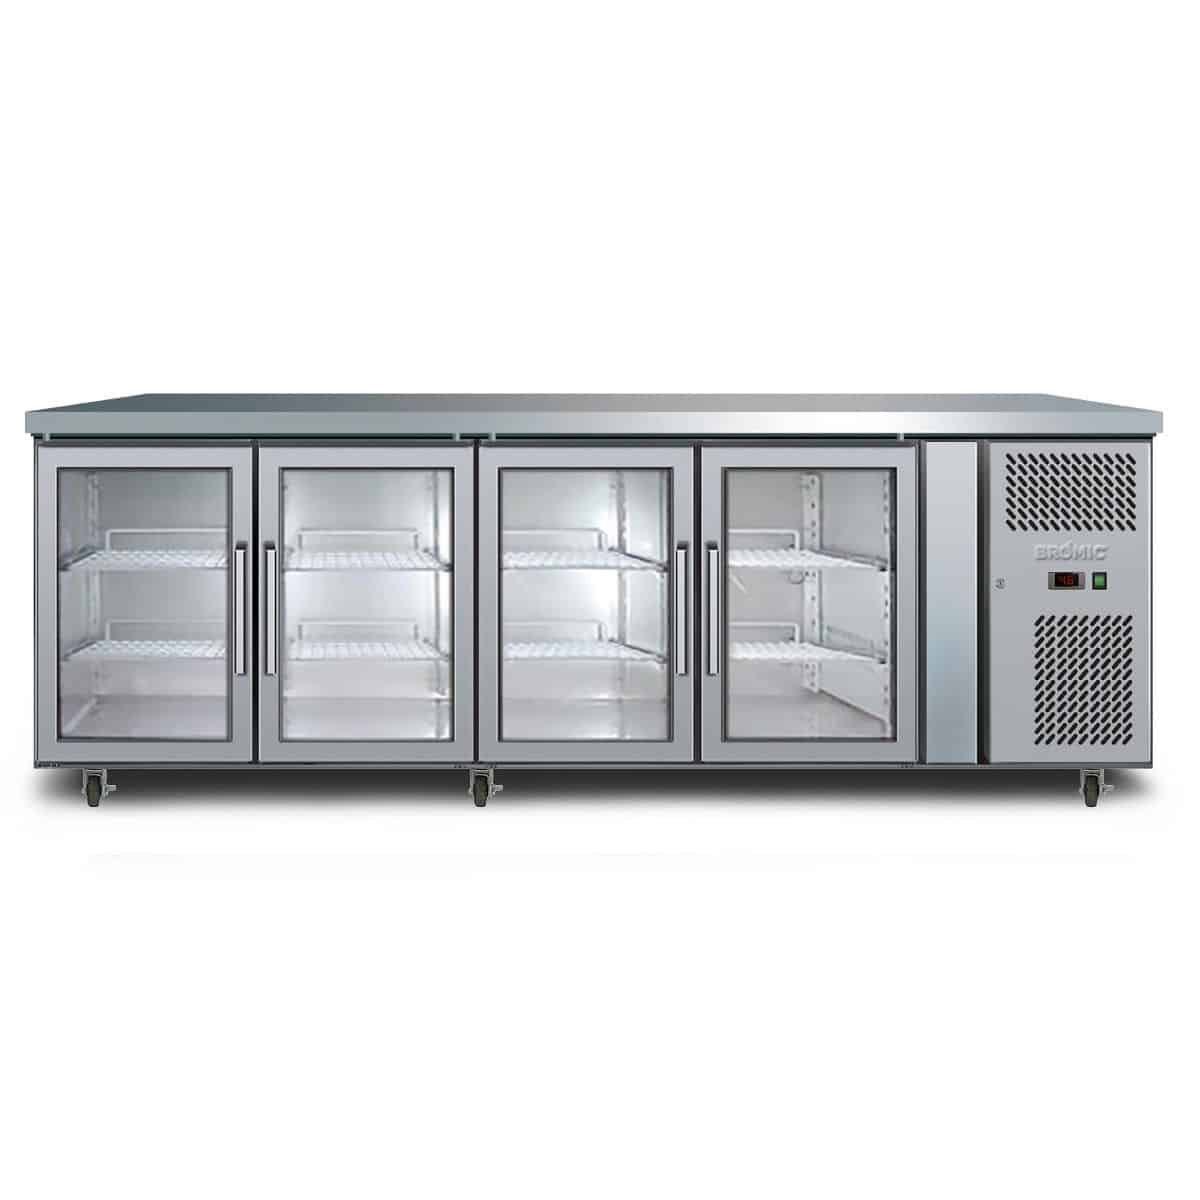 4door bar fridge